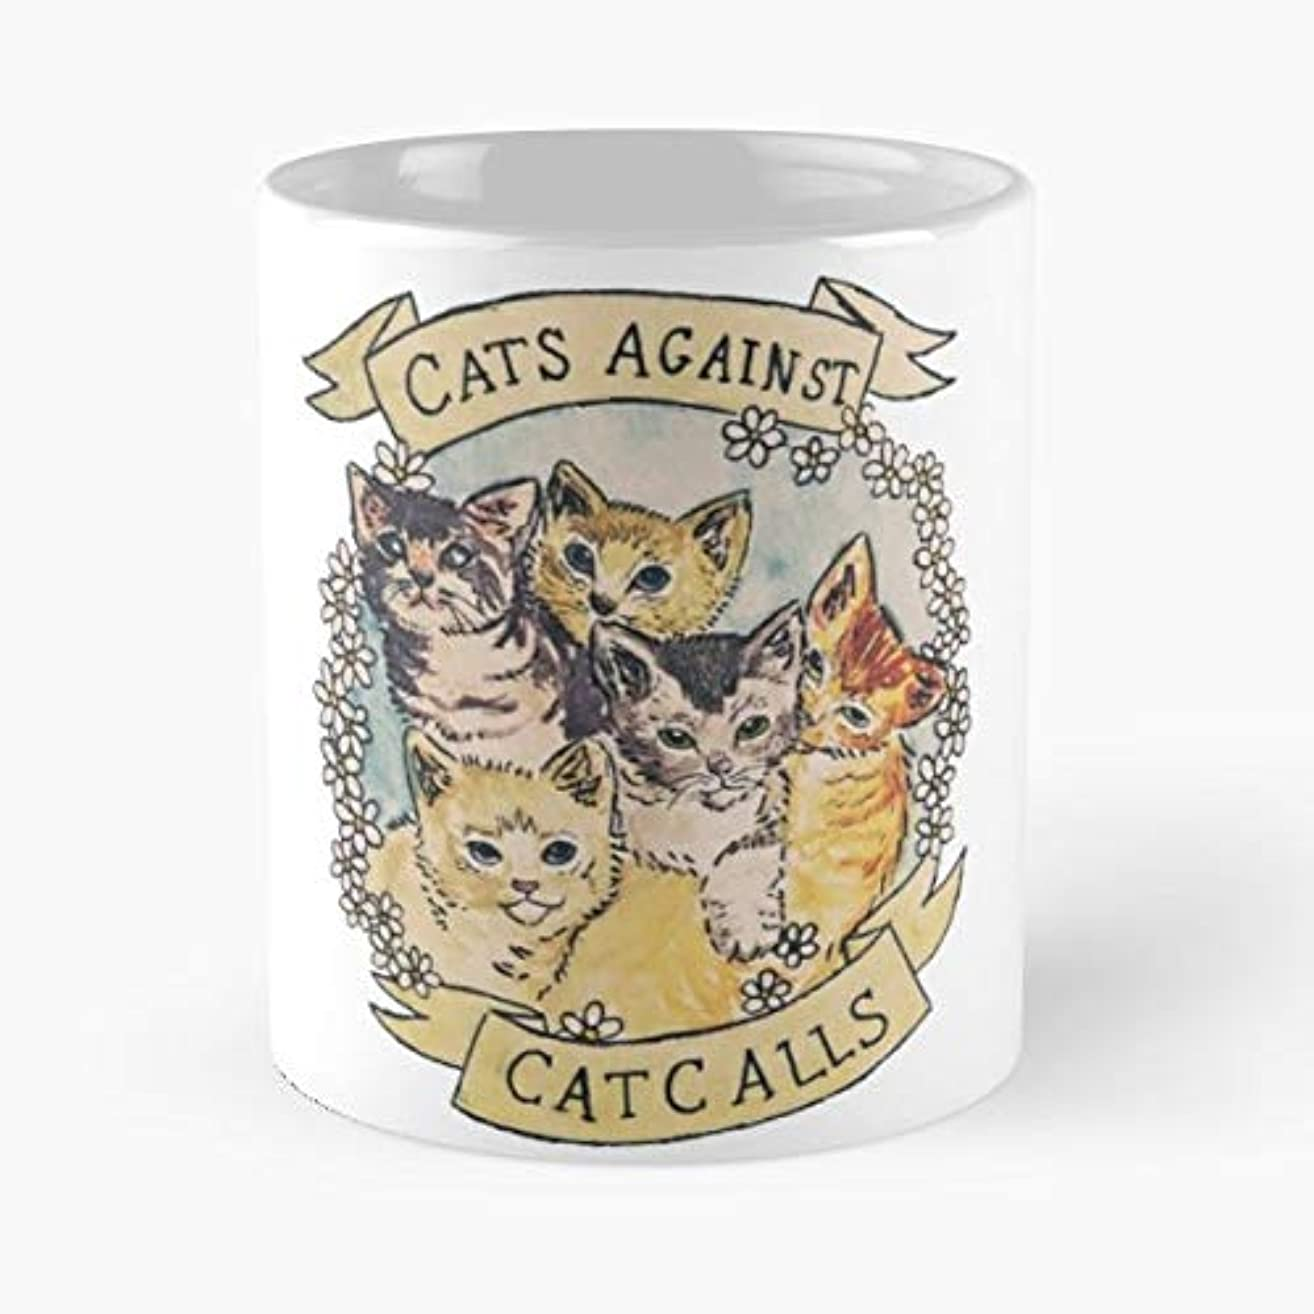 Cats Cat Kittens Feminism Coffee Mugs Unique Ceramic Novelty Cup